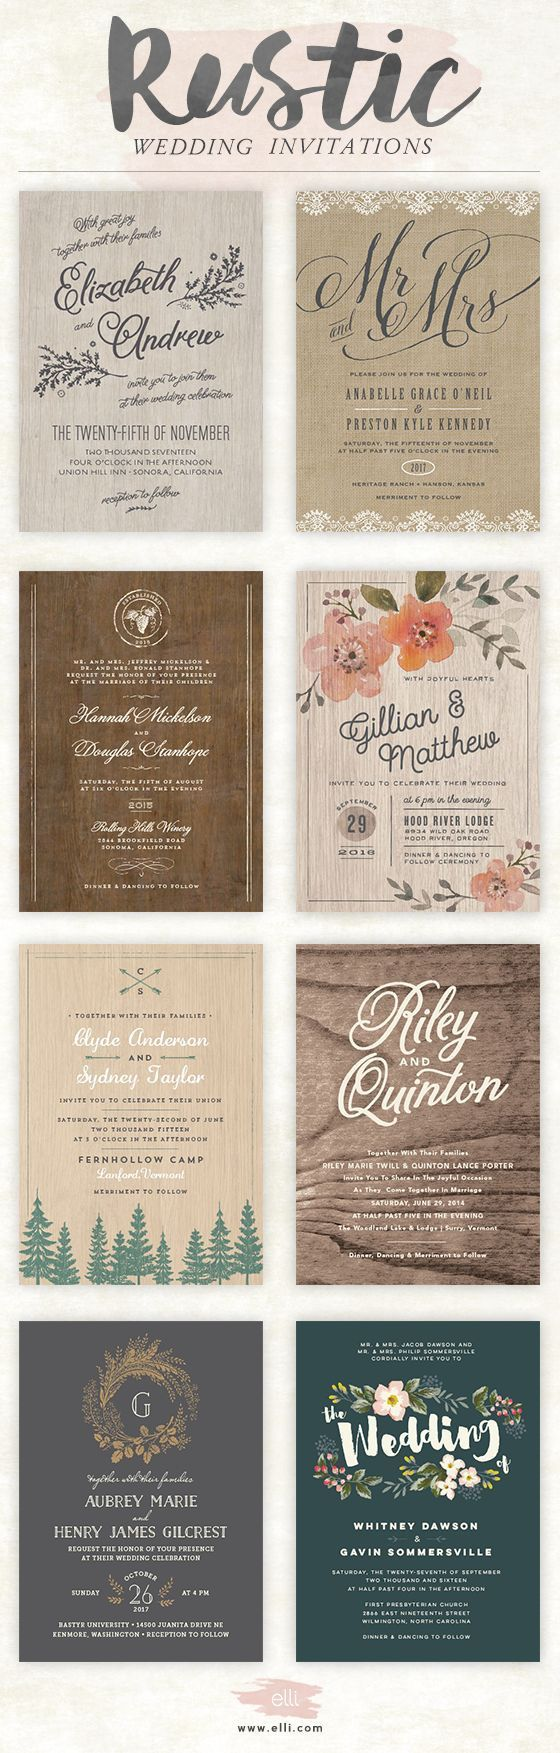 Rustic wedding invitations 948 best Wedding Inspiration